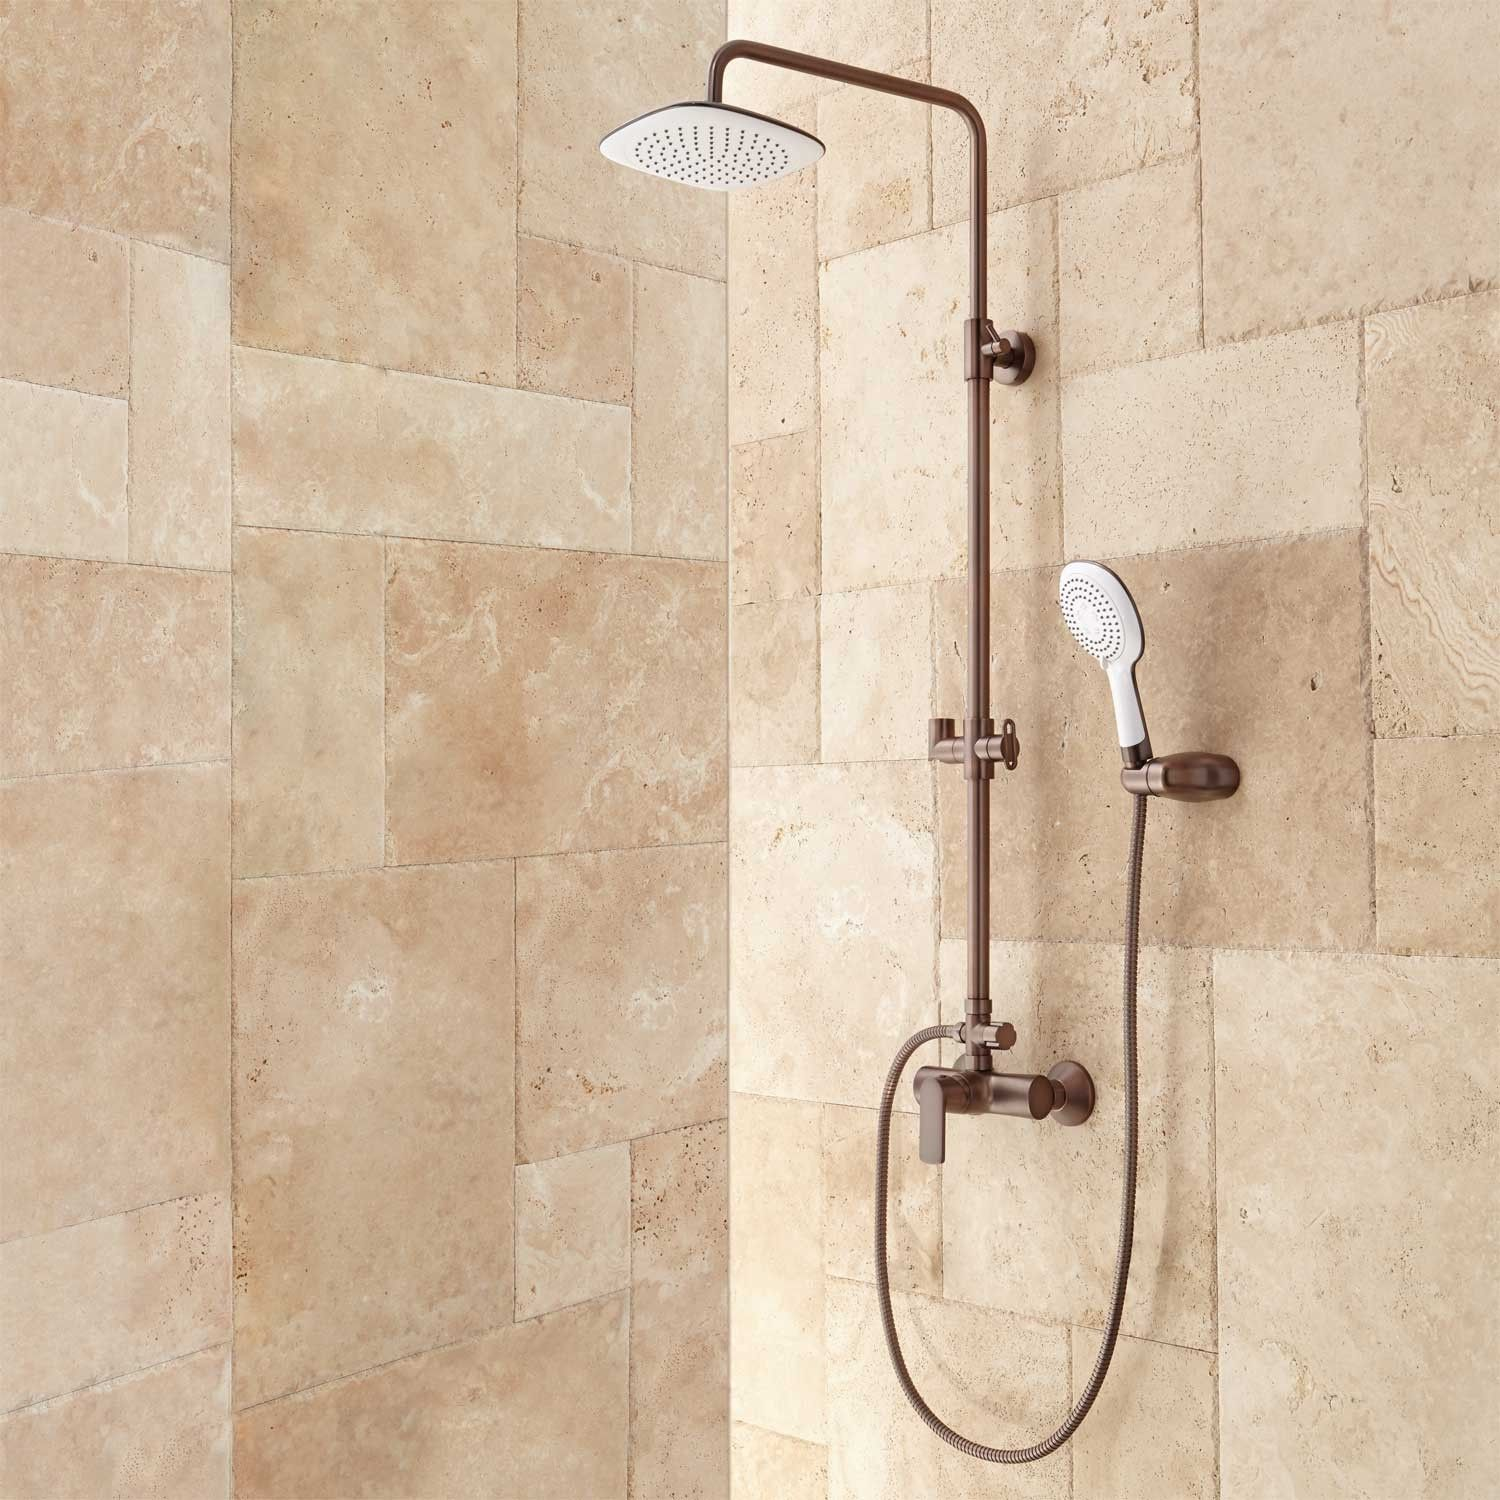 Mayport Exposed Pipe Shower | Shower bathroom, Brushed nickel and ...